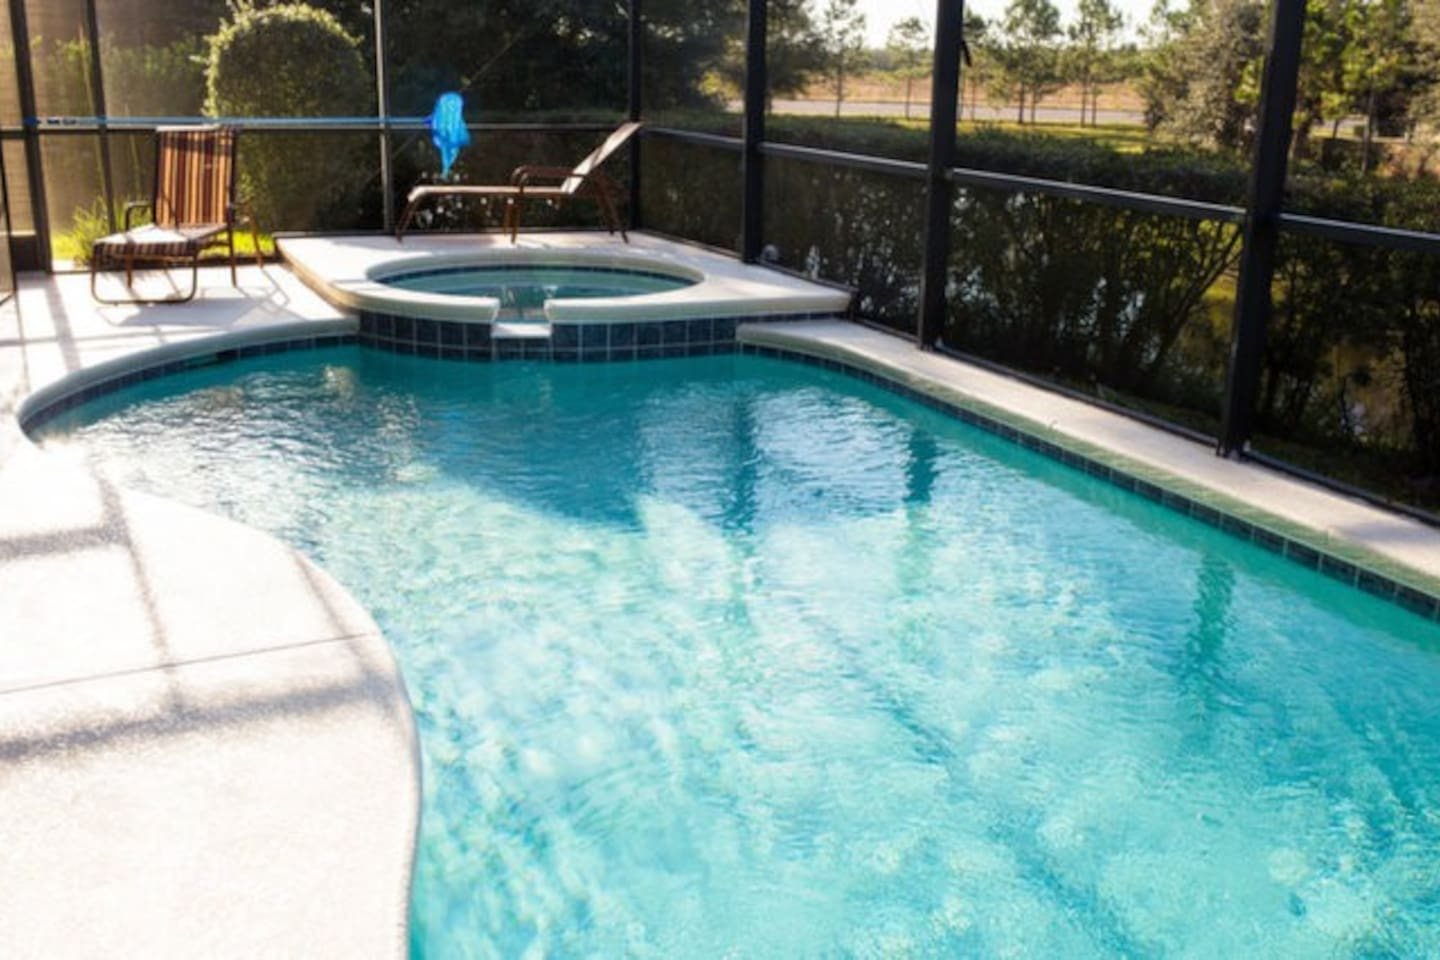 Pool deck with sun loungers to enjoy the sunshine state to the fullest!